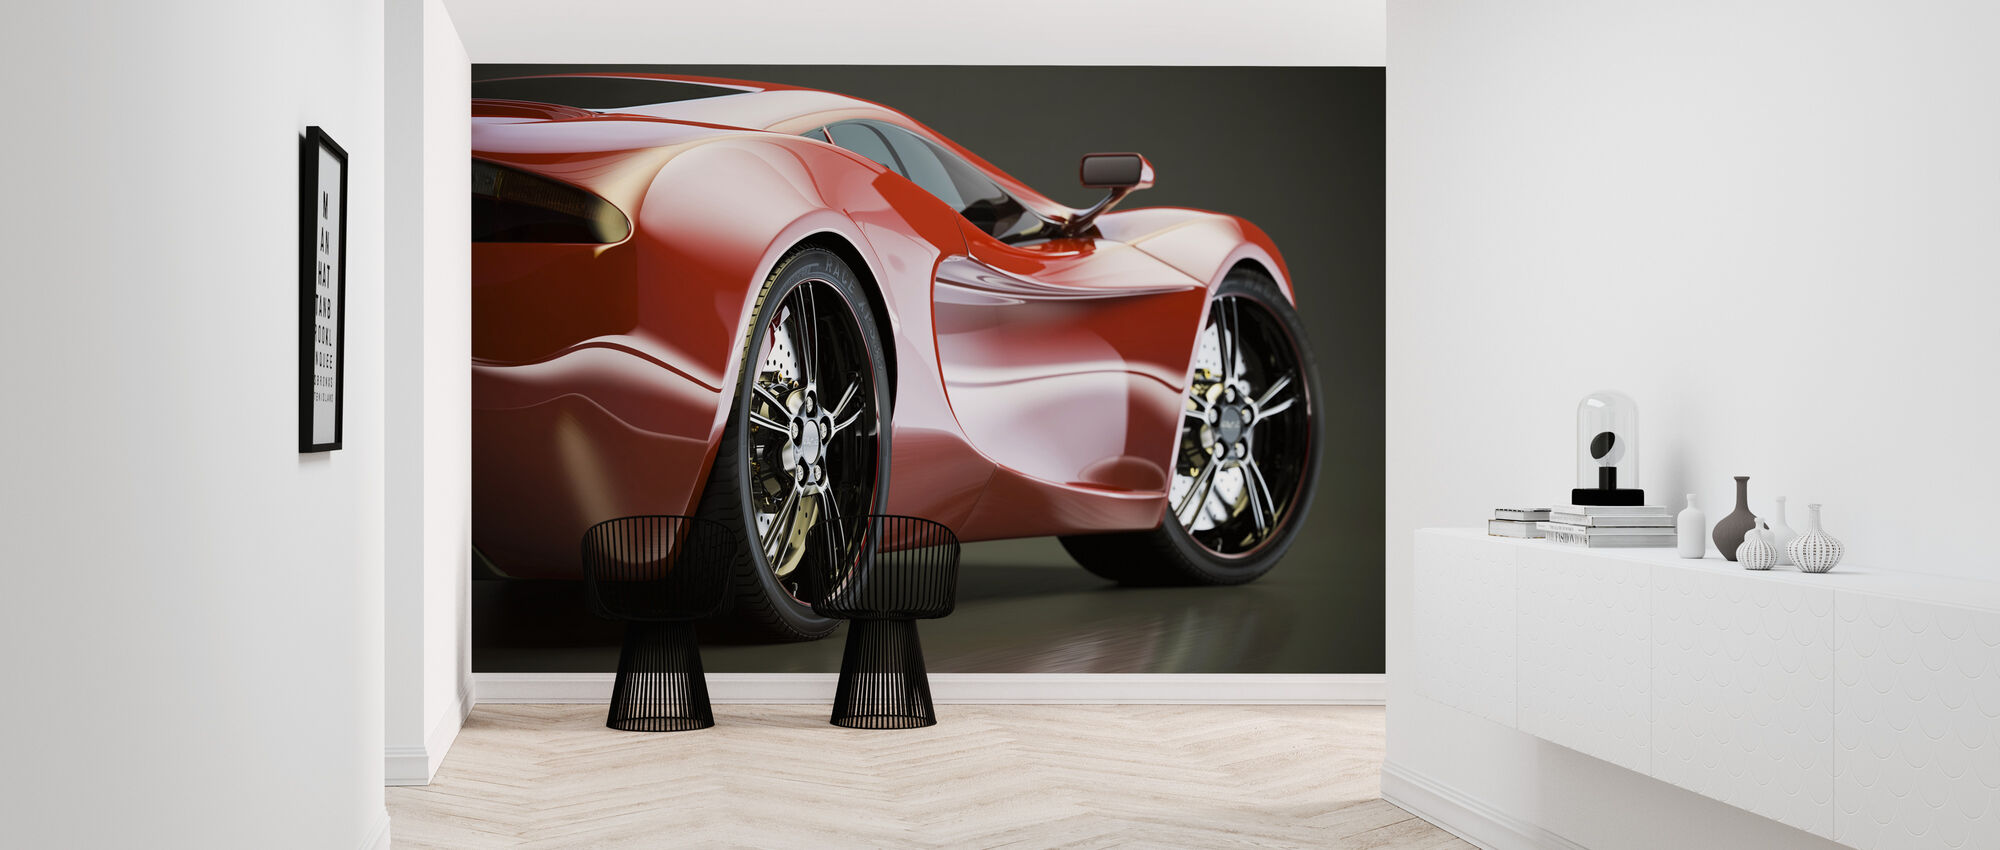 Sports Car - Wallpaper - Hallway